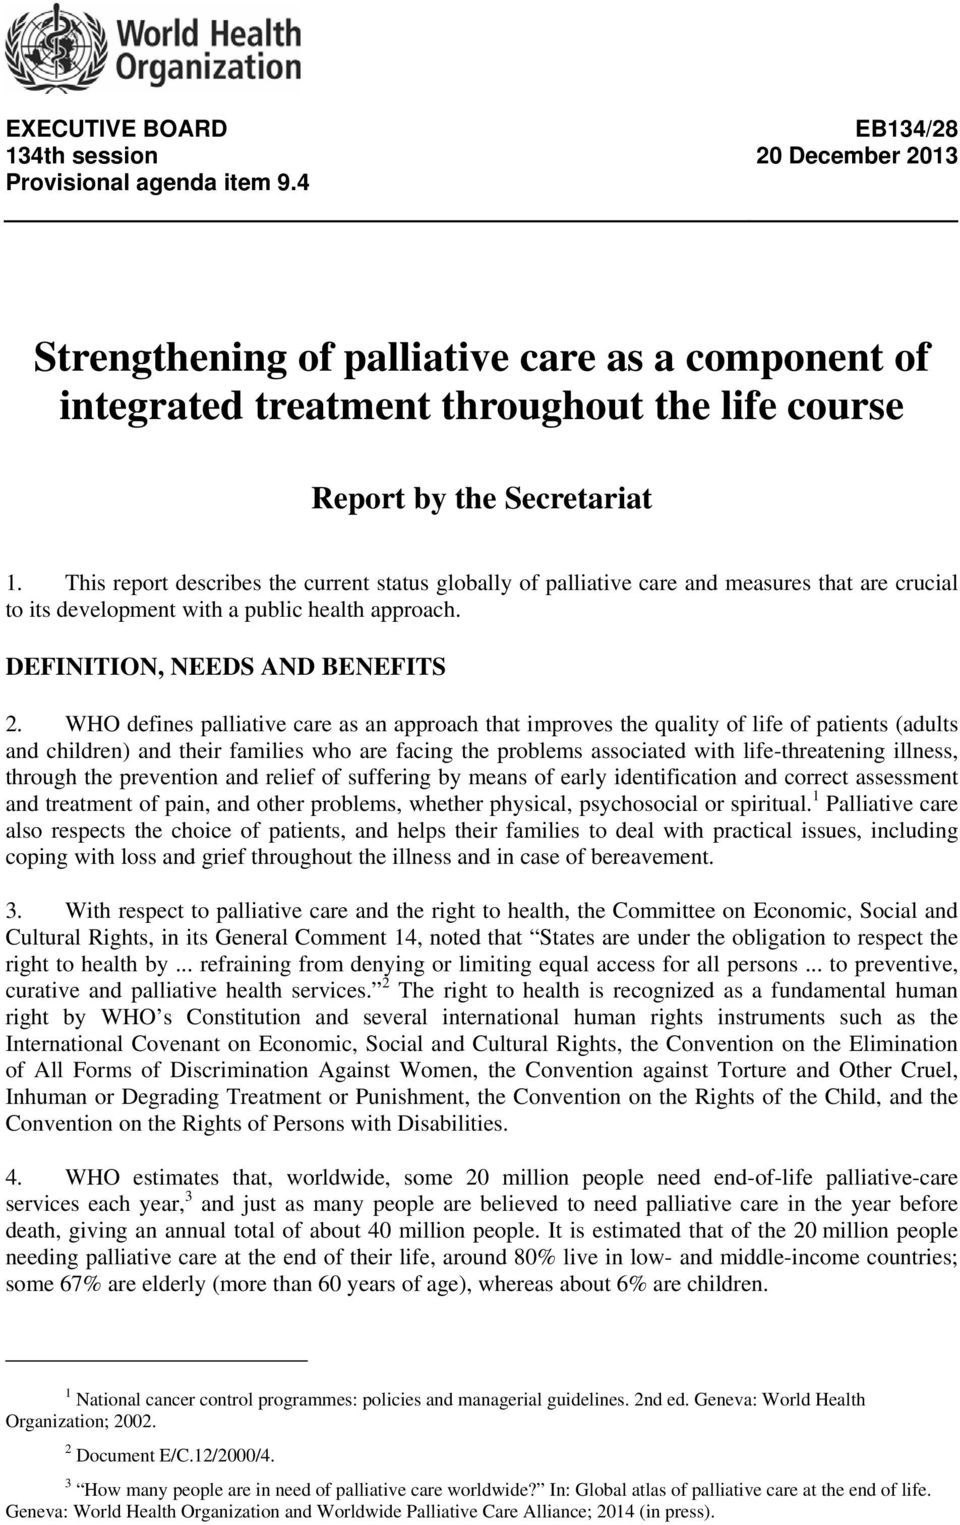 This report describes the current status globally of palliative care and measures that are crucial to its development with a public health approach. DEFINITION, NEEDS AND BENEFITS 2.